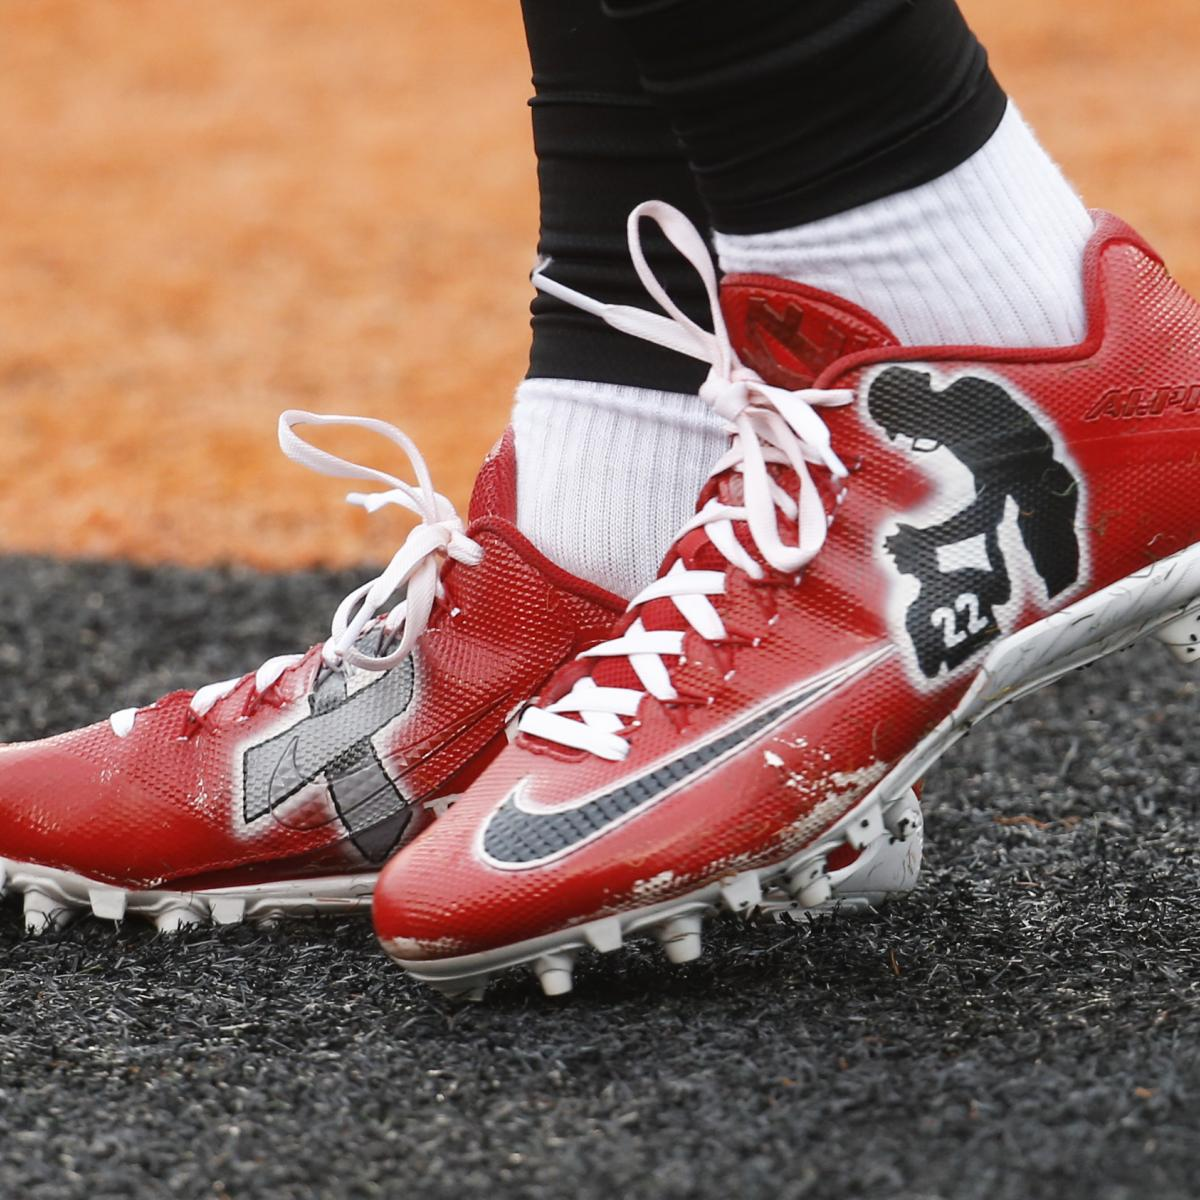 06bba920ec49 NFL Reportedly Allowing Players to Wear More Personalized Cleats Before  Games